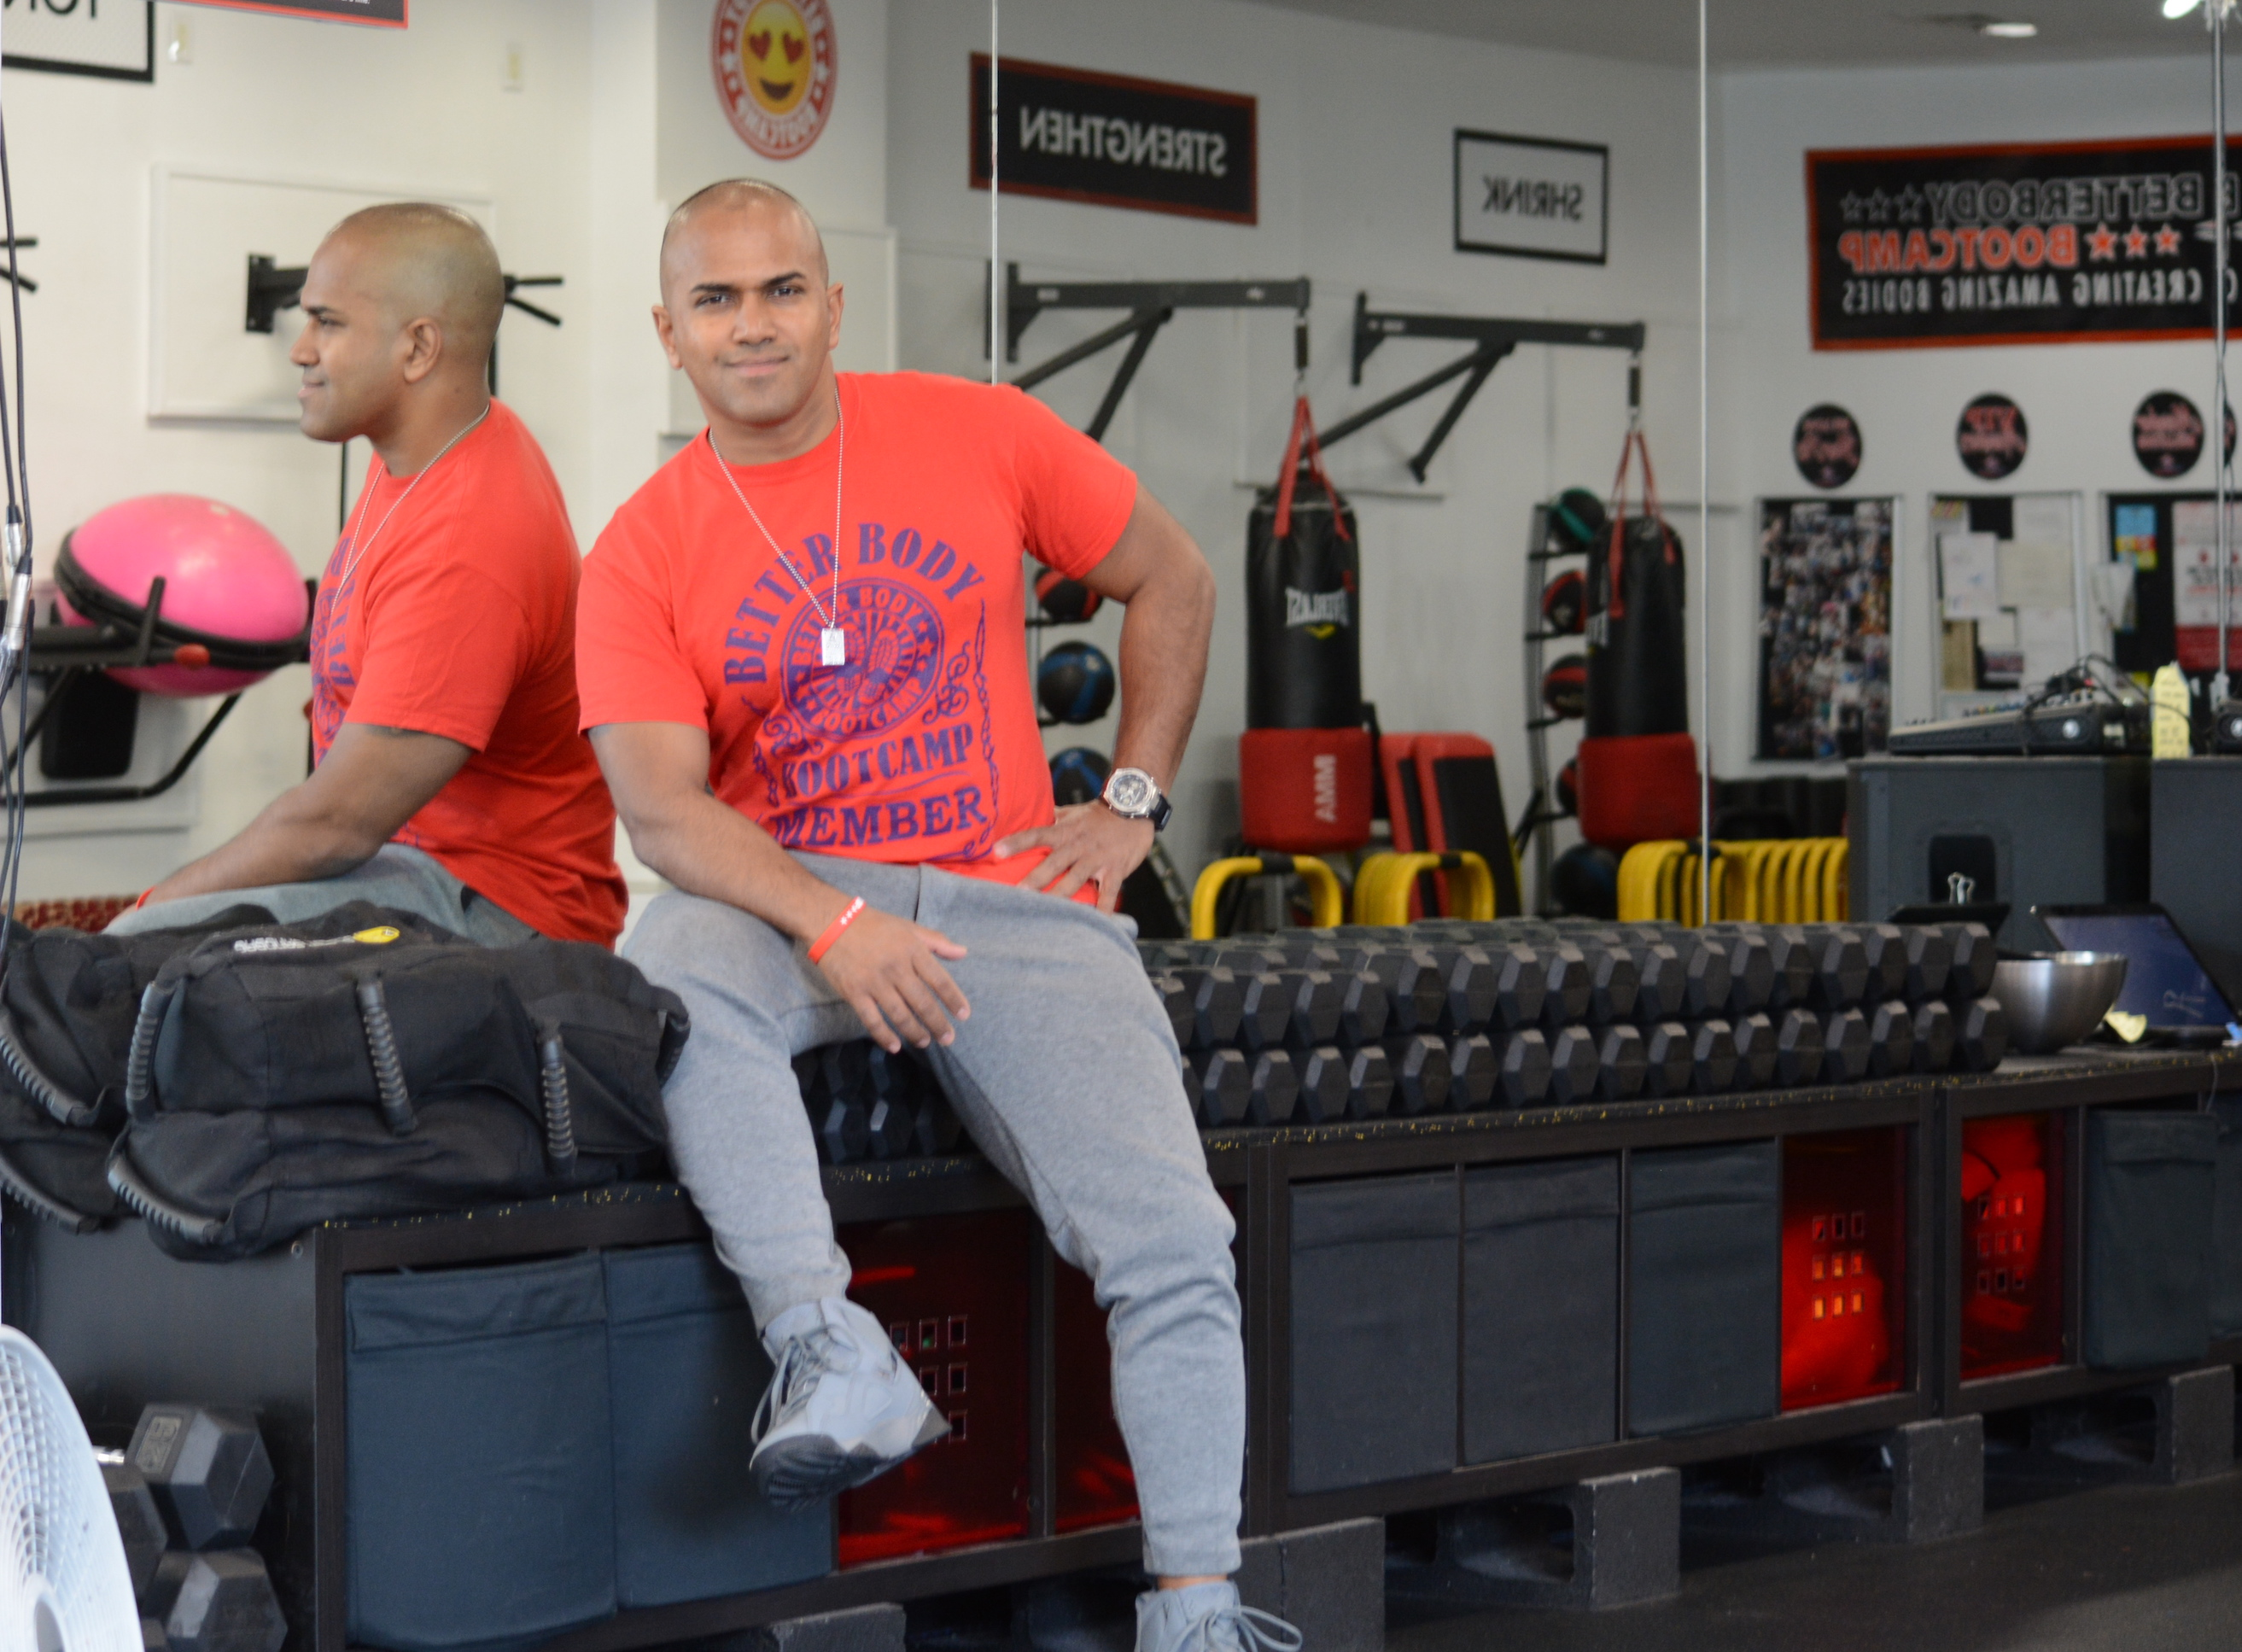 Better Body Bootcamp builds body, mind and community